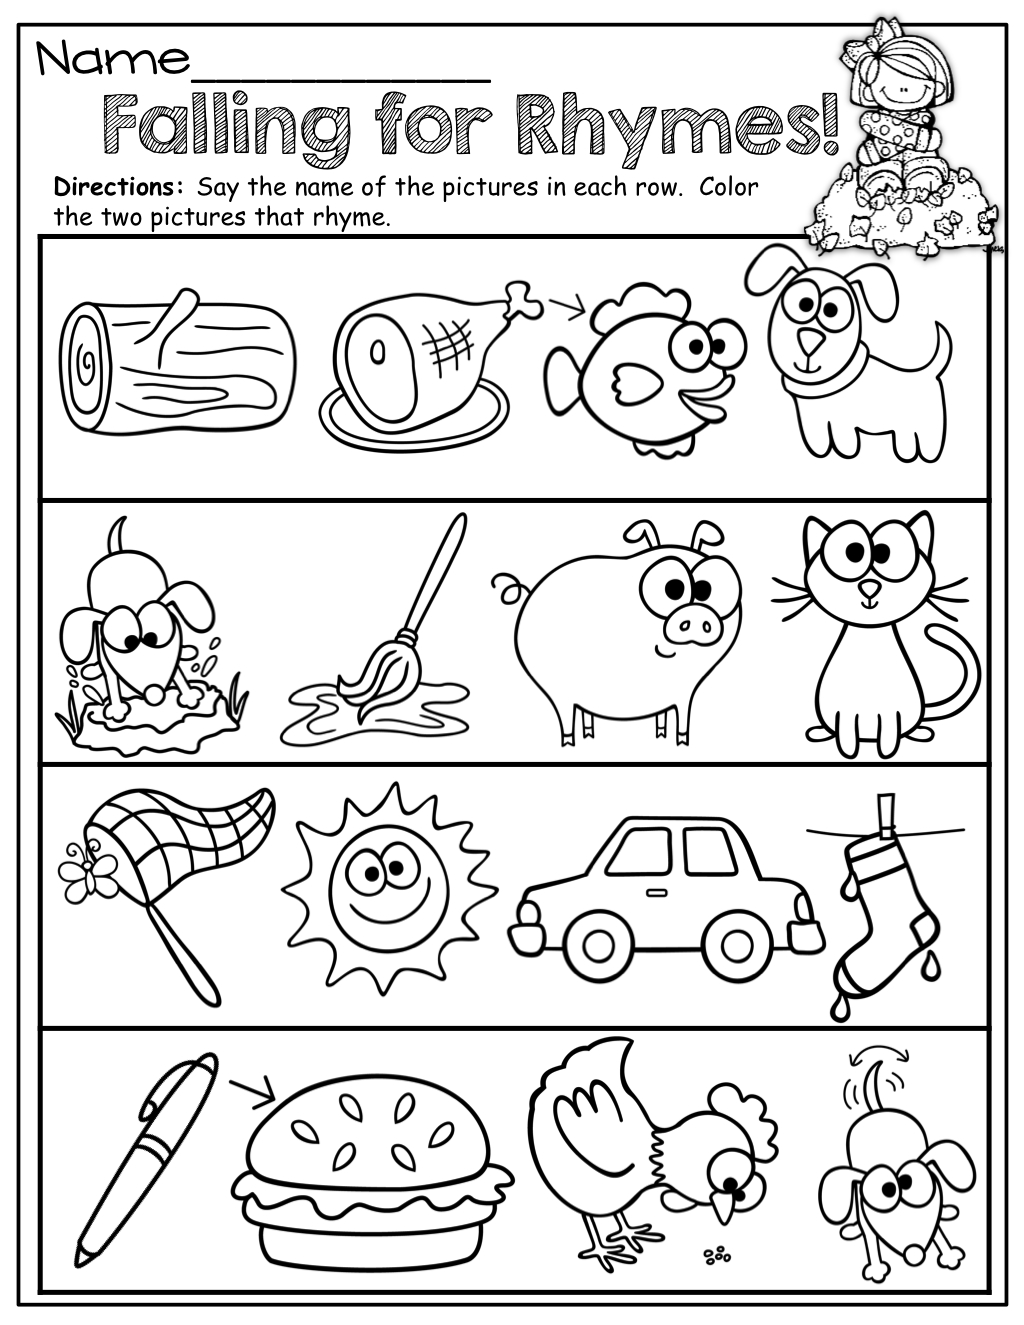 Repinnedmyslpmaterials Visit Our Page For Free Speech - Free Printable Rhyming Words Worksheets